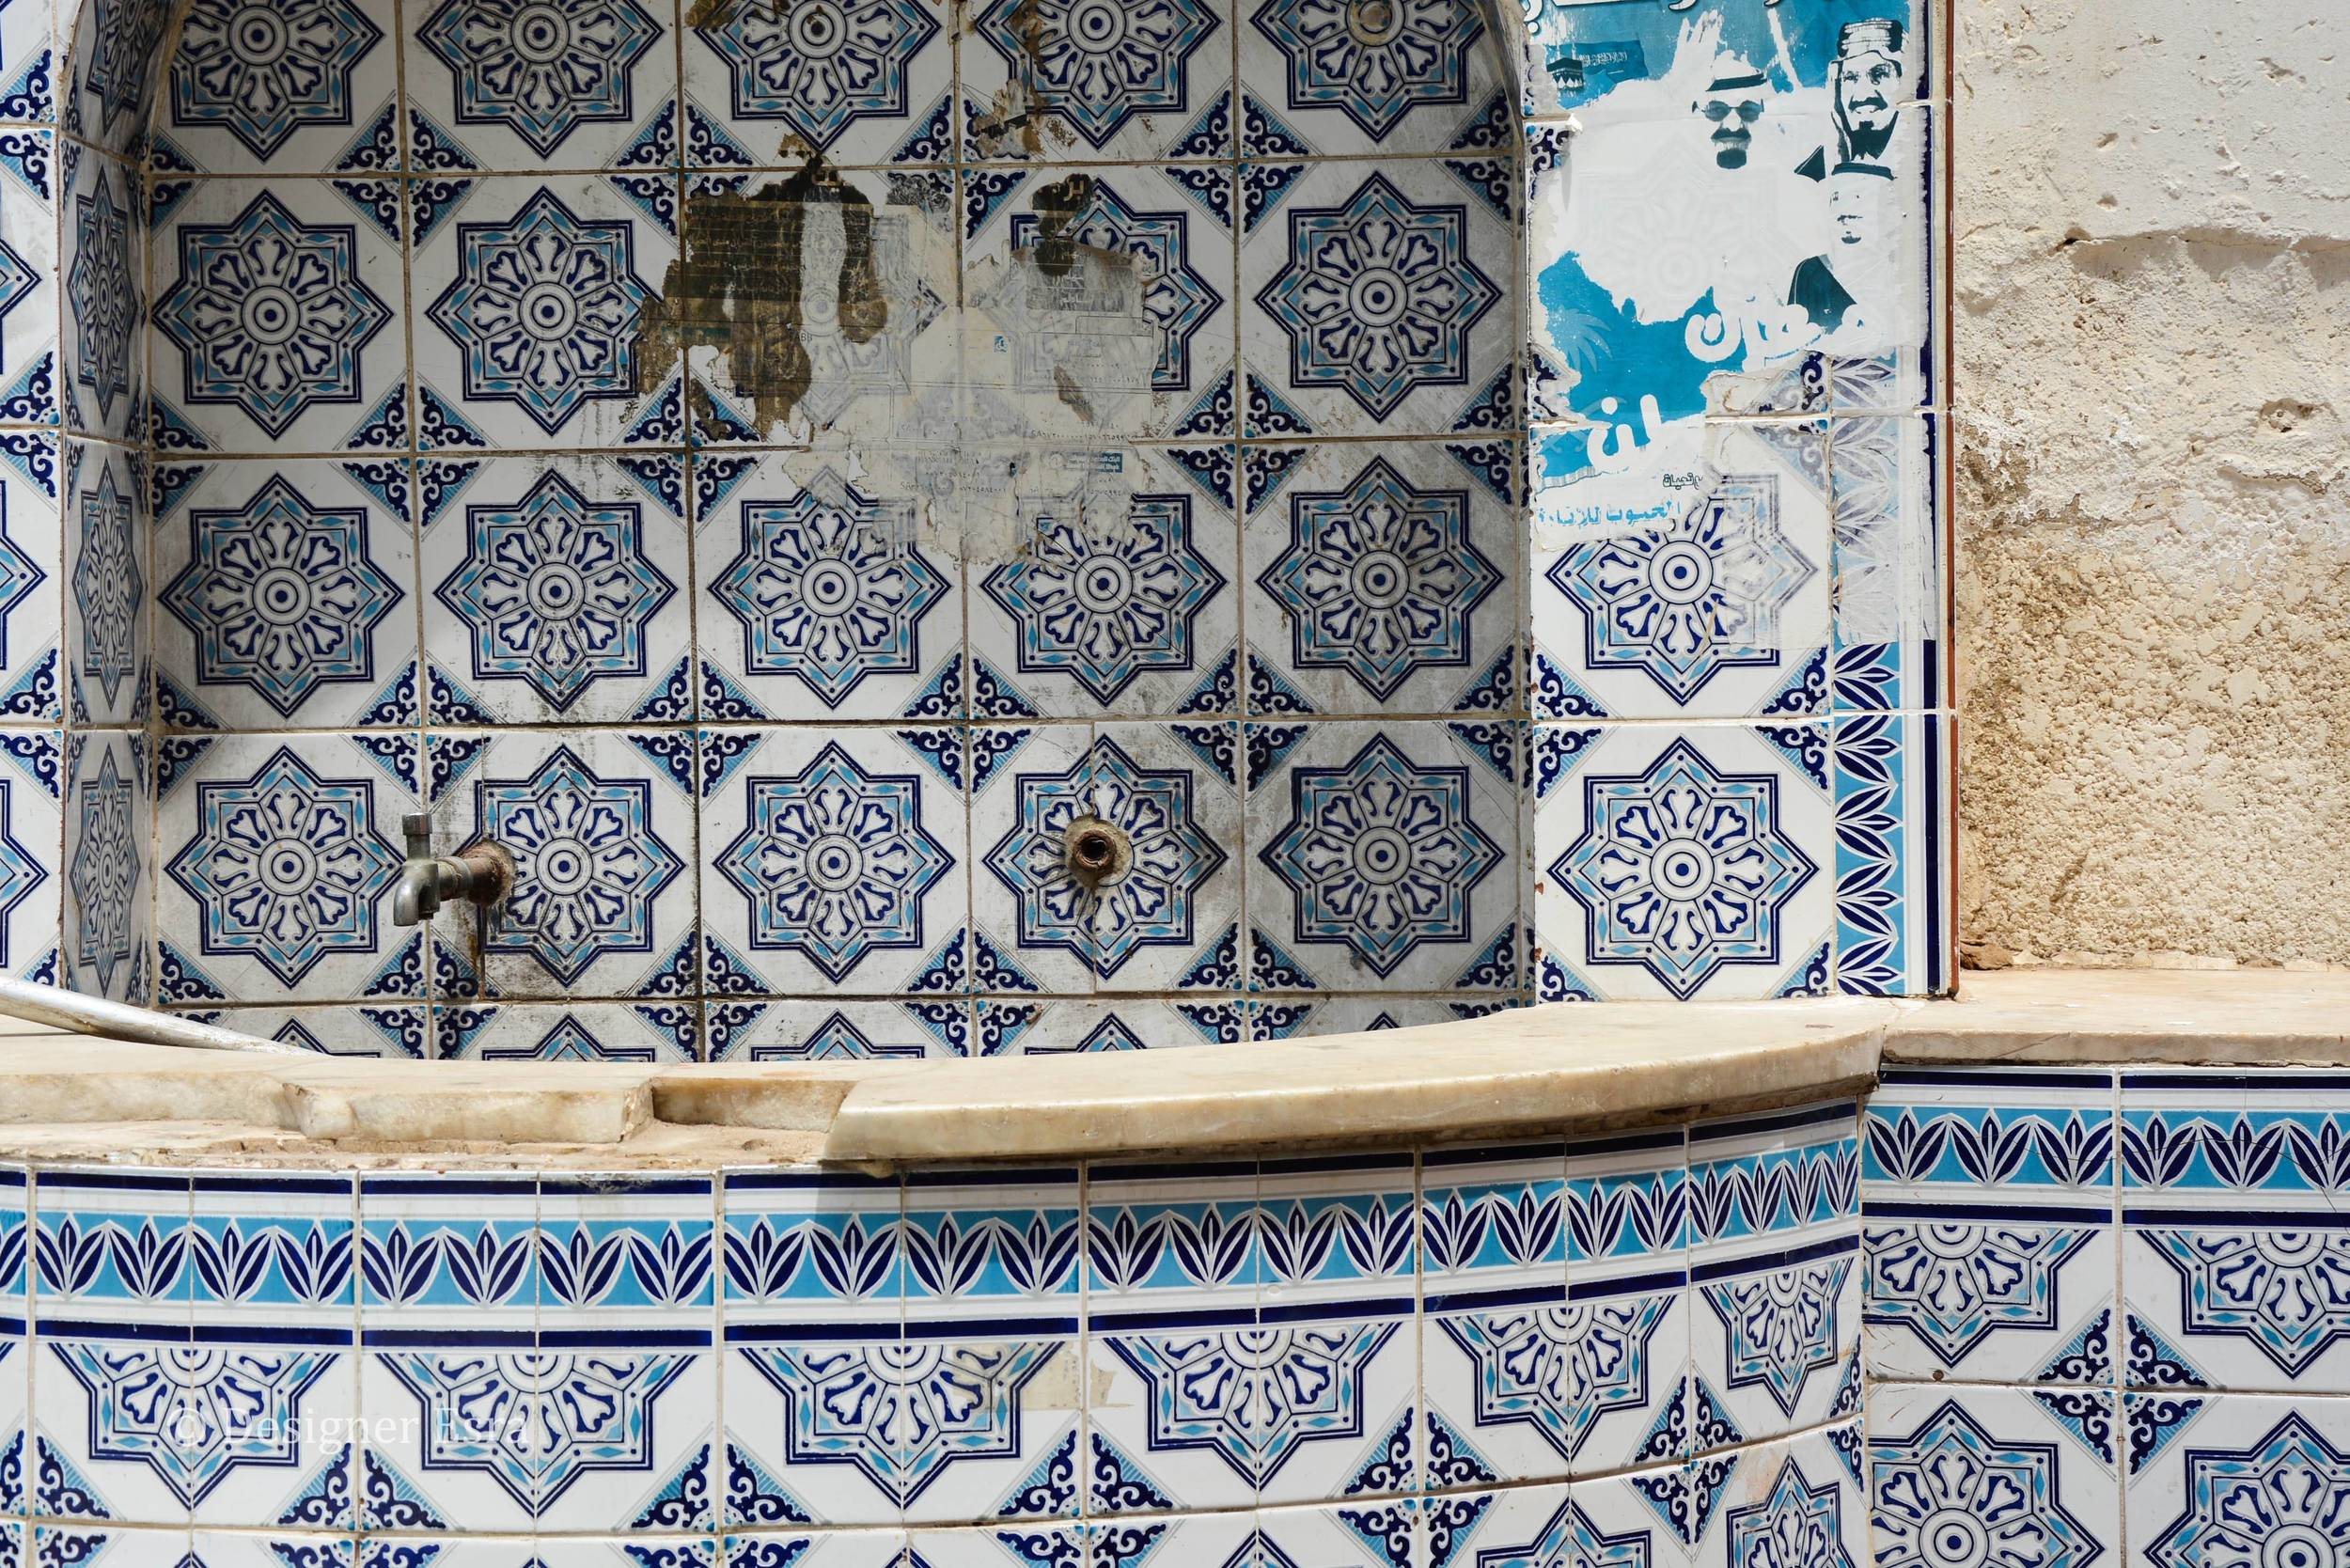 Tiles in Jeddah